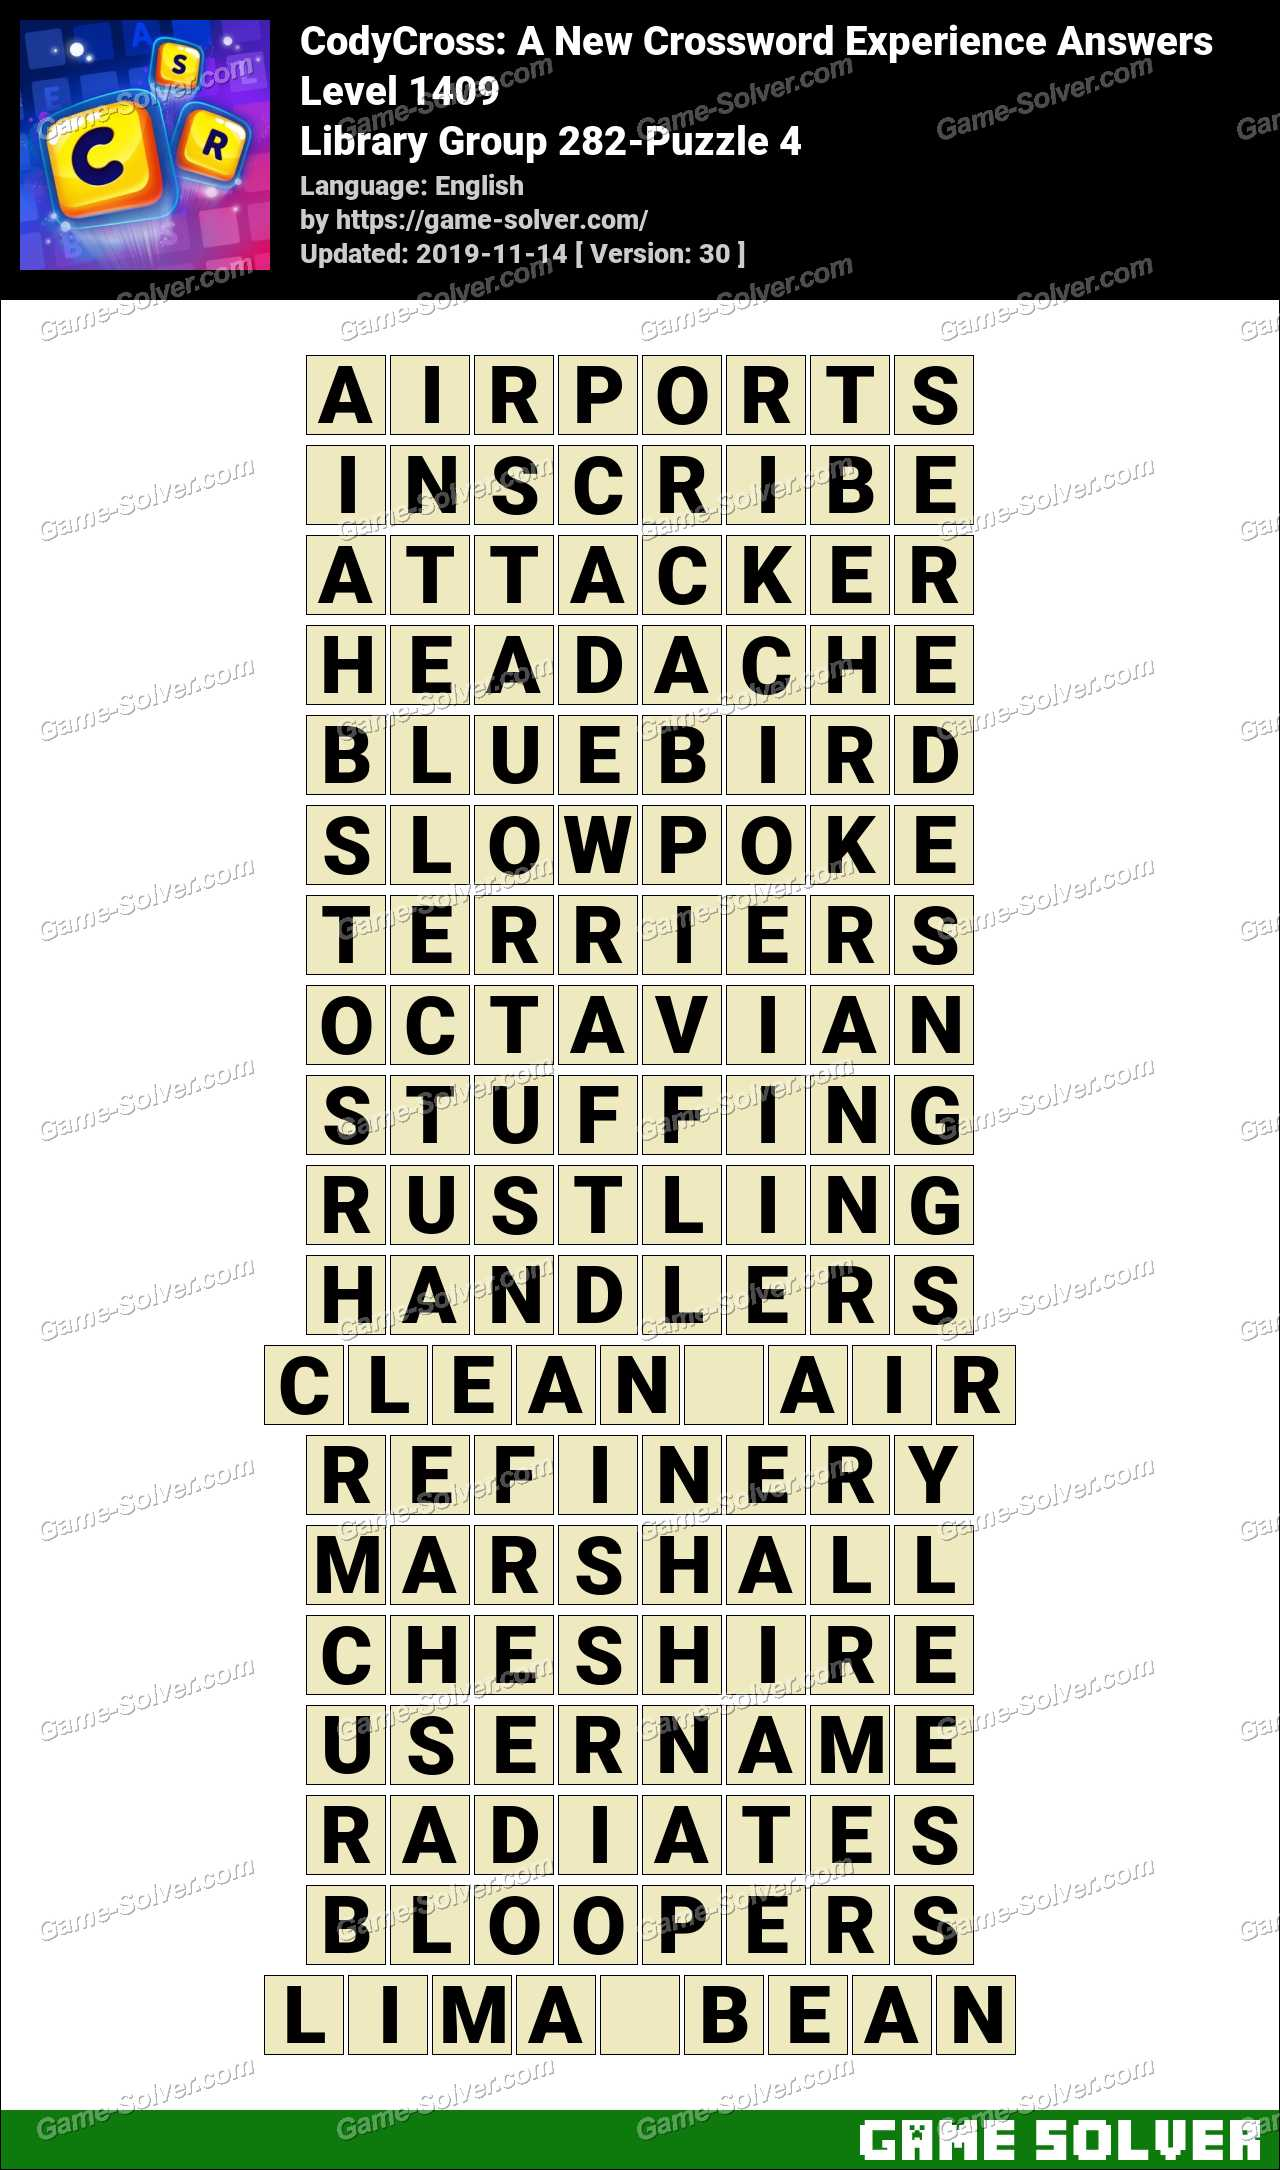 CodyCross Library Group 282-Puzzle 4 Answers